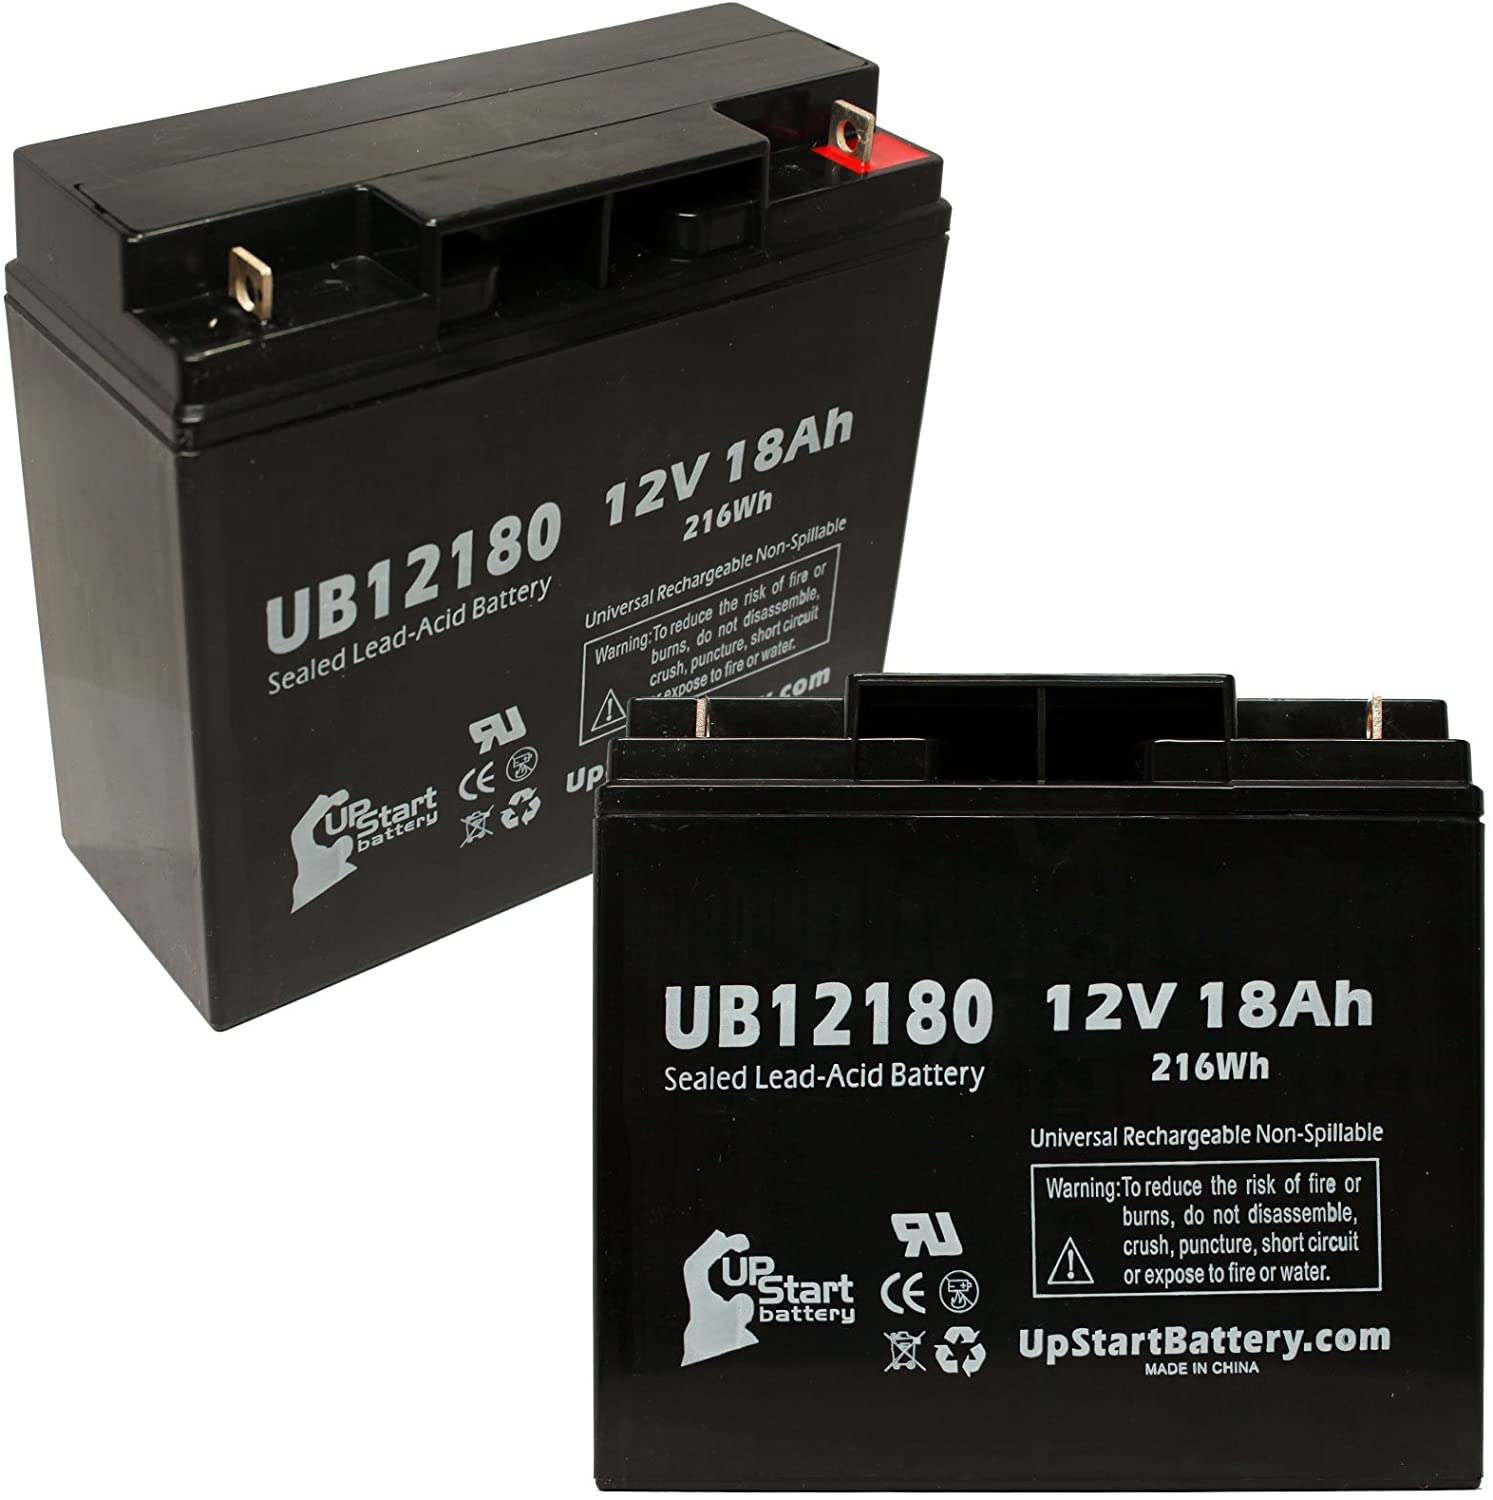 2 Pack Replacement for Datascope ORT Balloon 95 Intra AORT Battery - Replacement UB12180 Universal Sealed Lead Acid Battery (12V, 18Ah, 18000mAh, T4 Terminal, AGM, SLA)